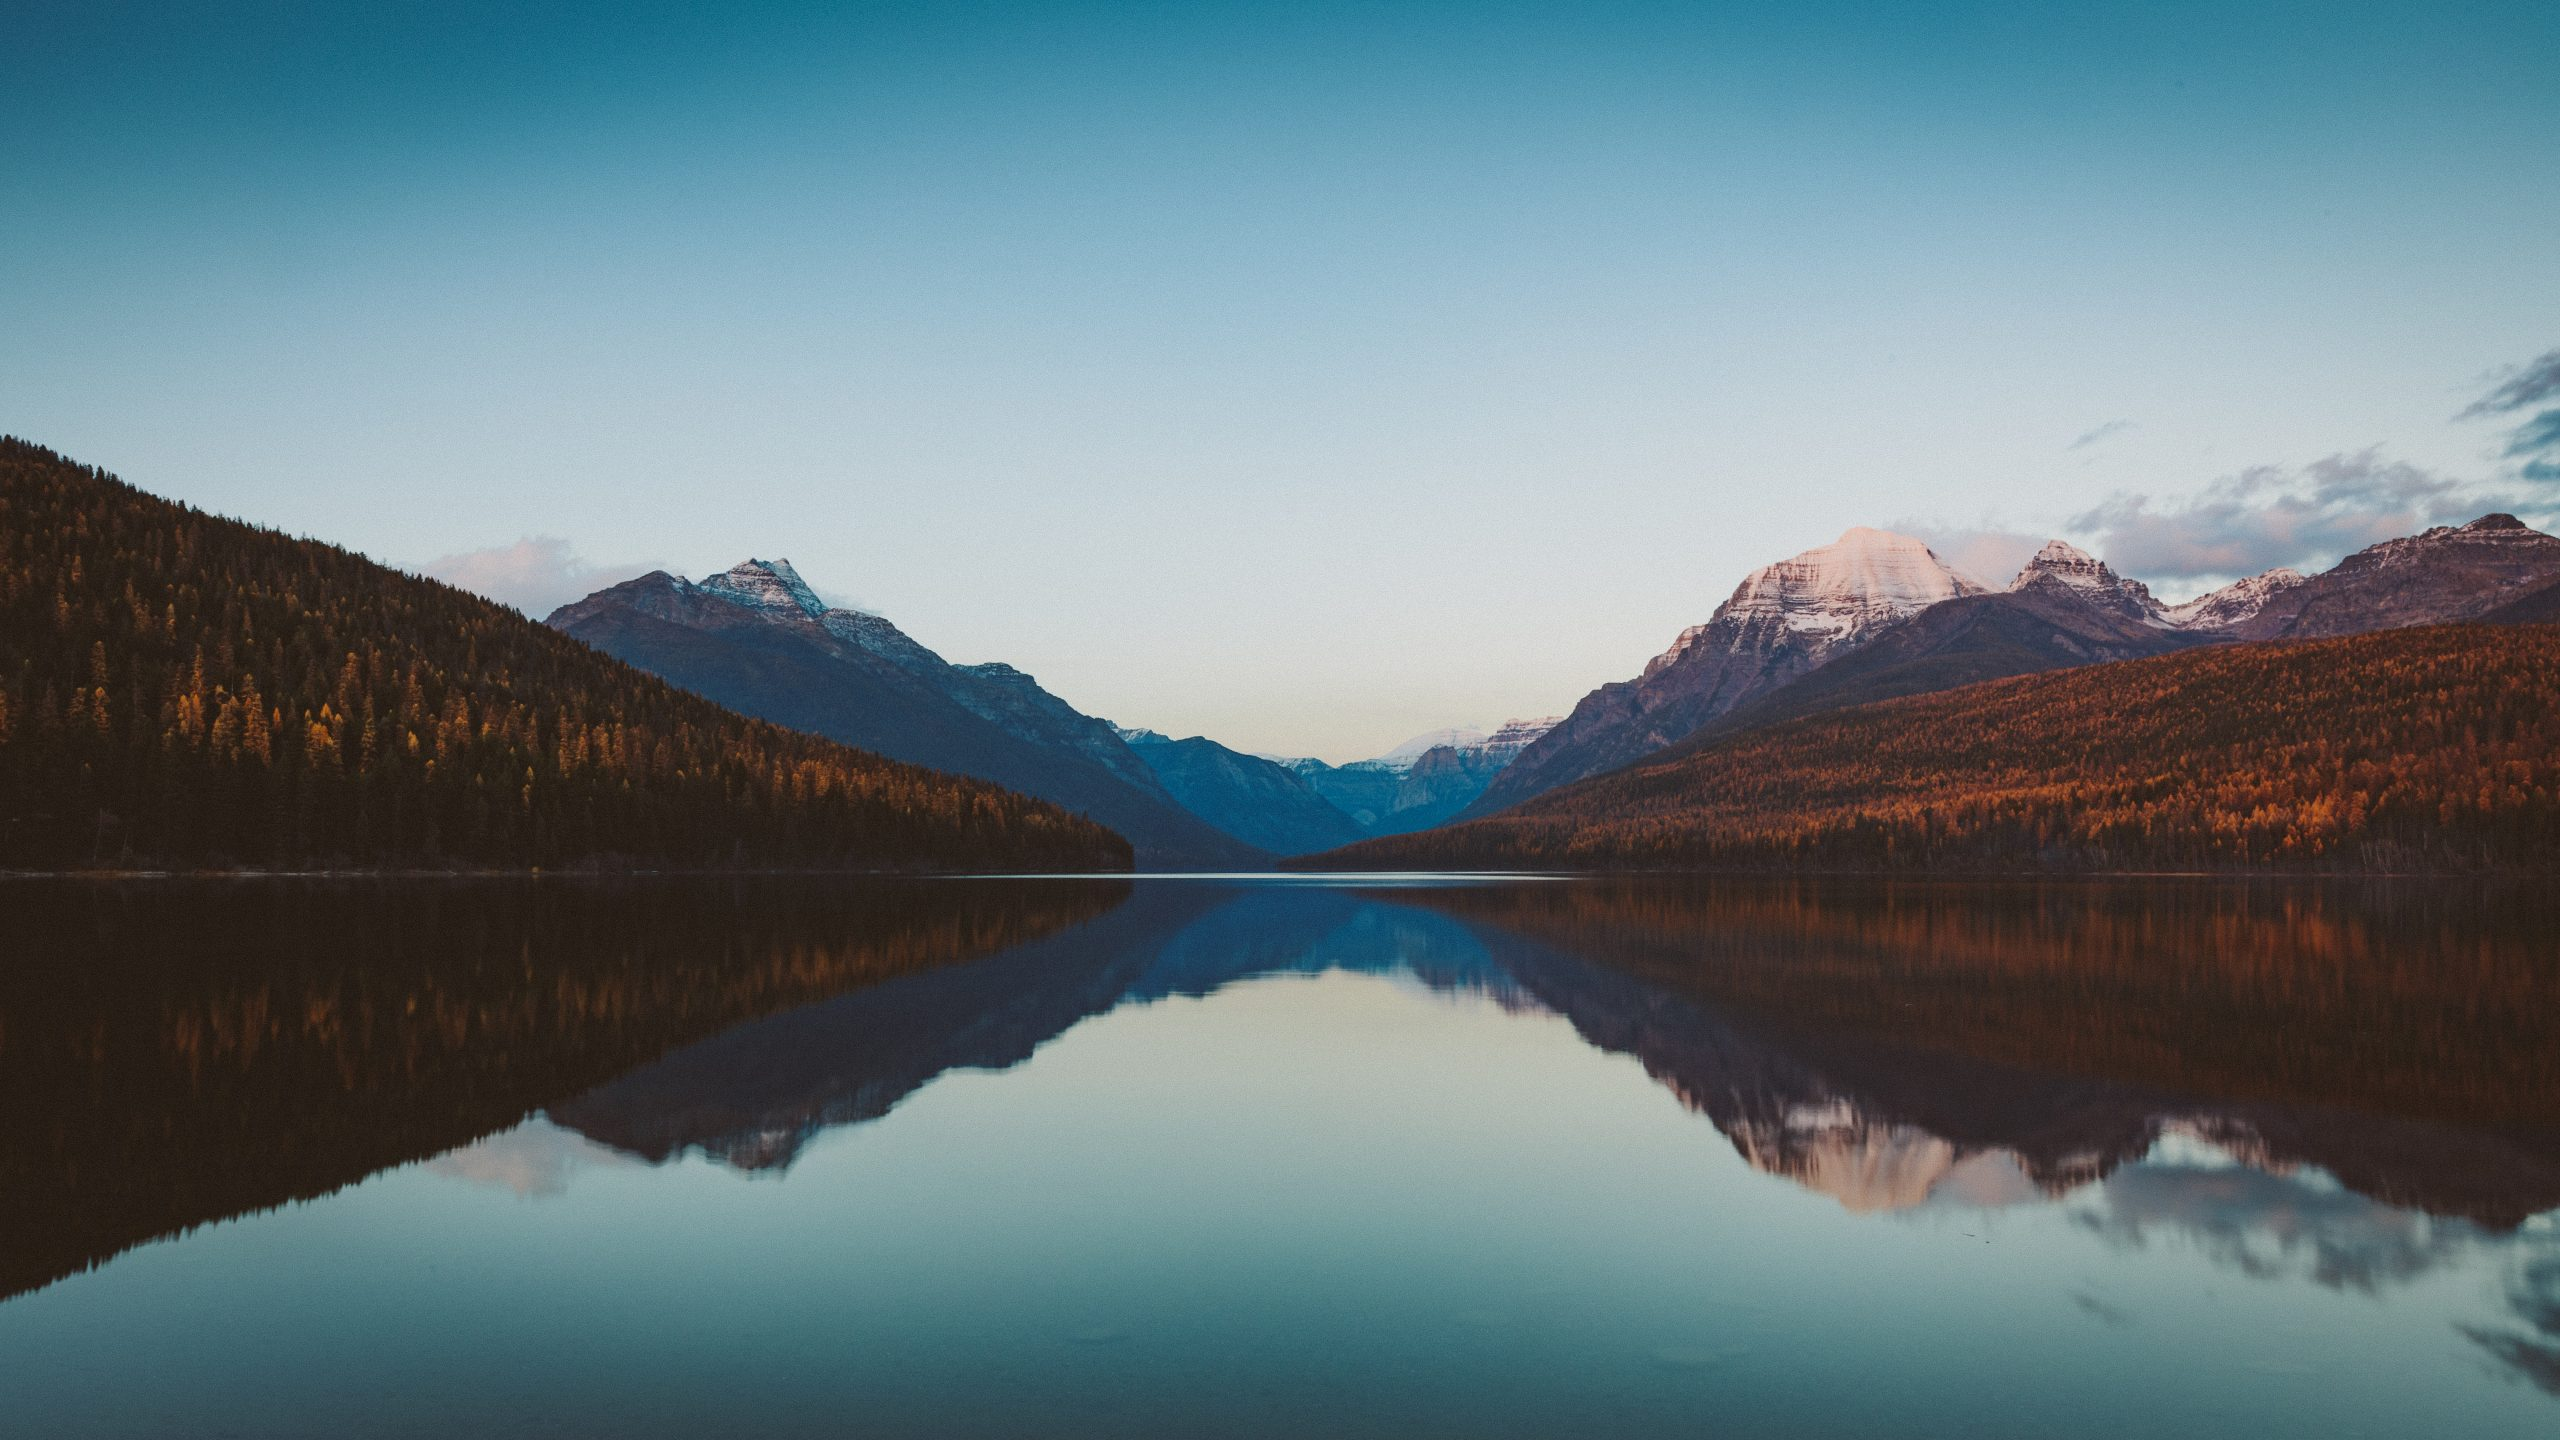 The calm waters of Bowman Lake reflect the sky and mountains on a clear fall evening.